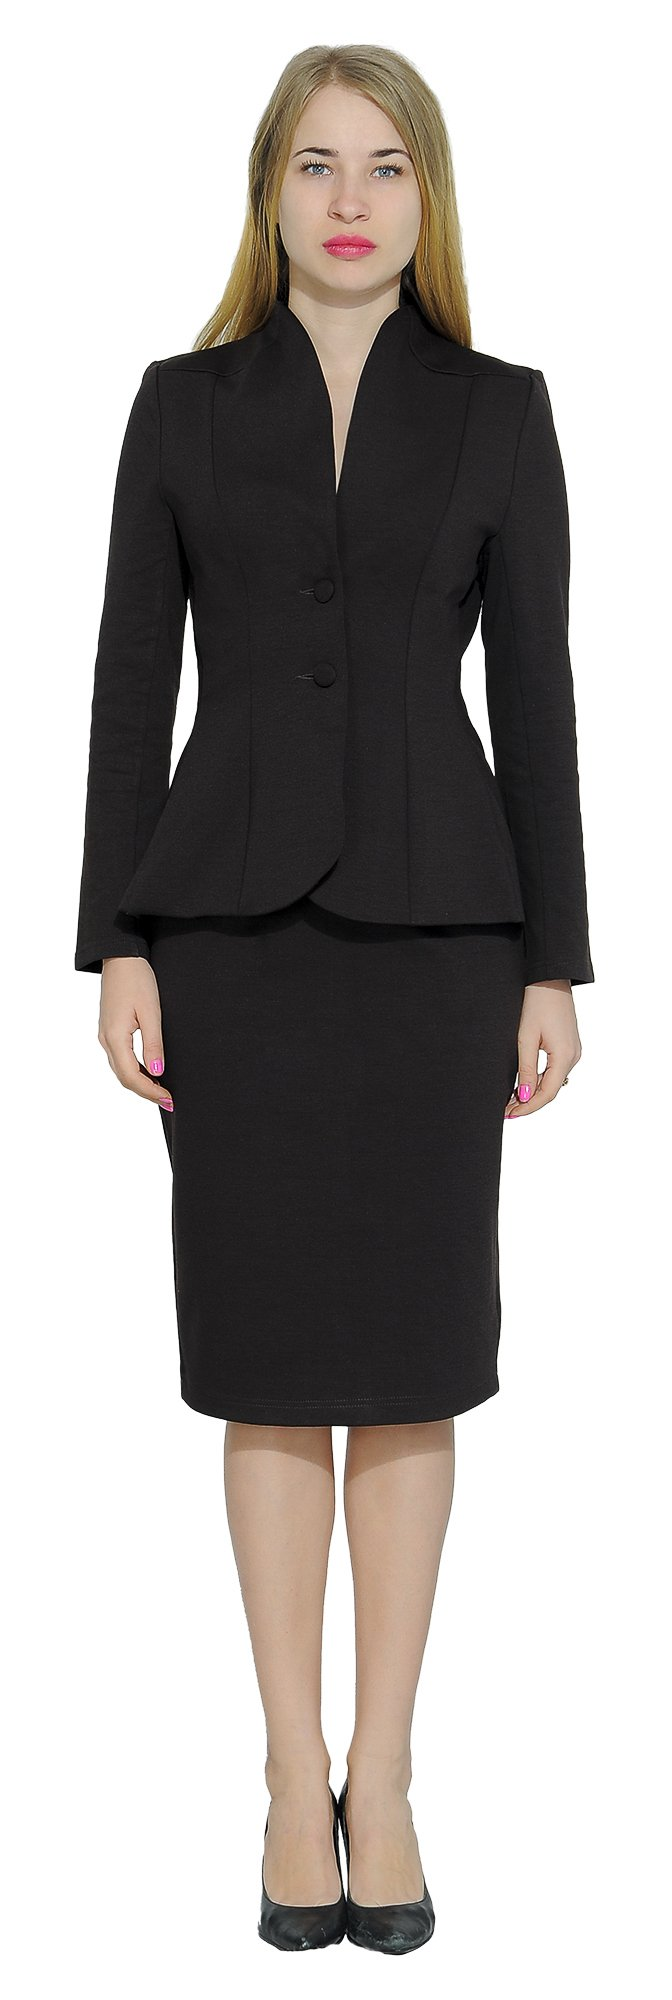 Marycrafts Women's Formal Office Business Work Jacket Skirt Suit Set 16 Black by Marycrafts